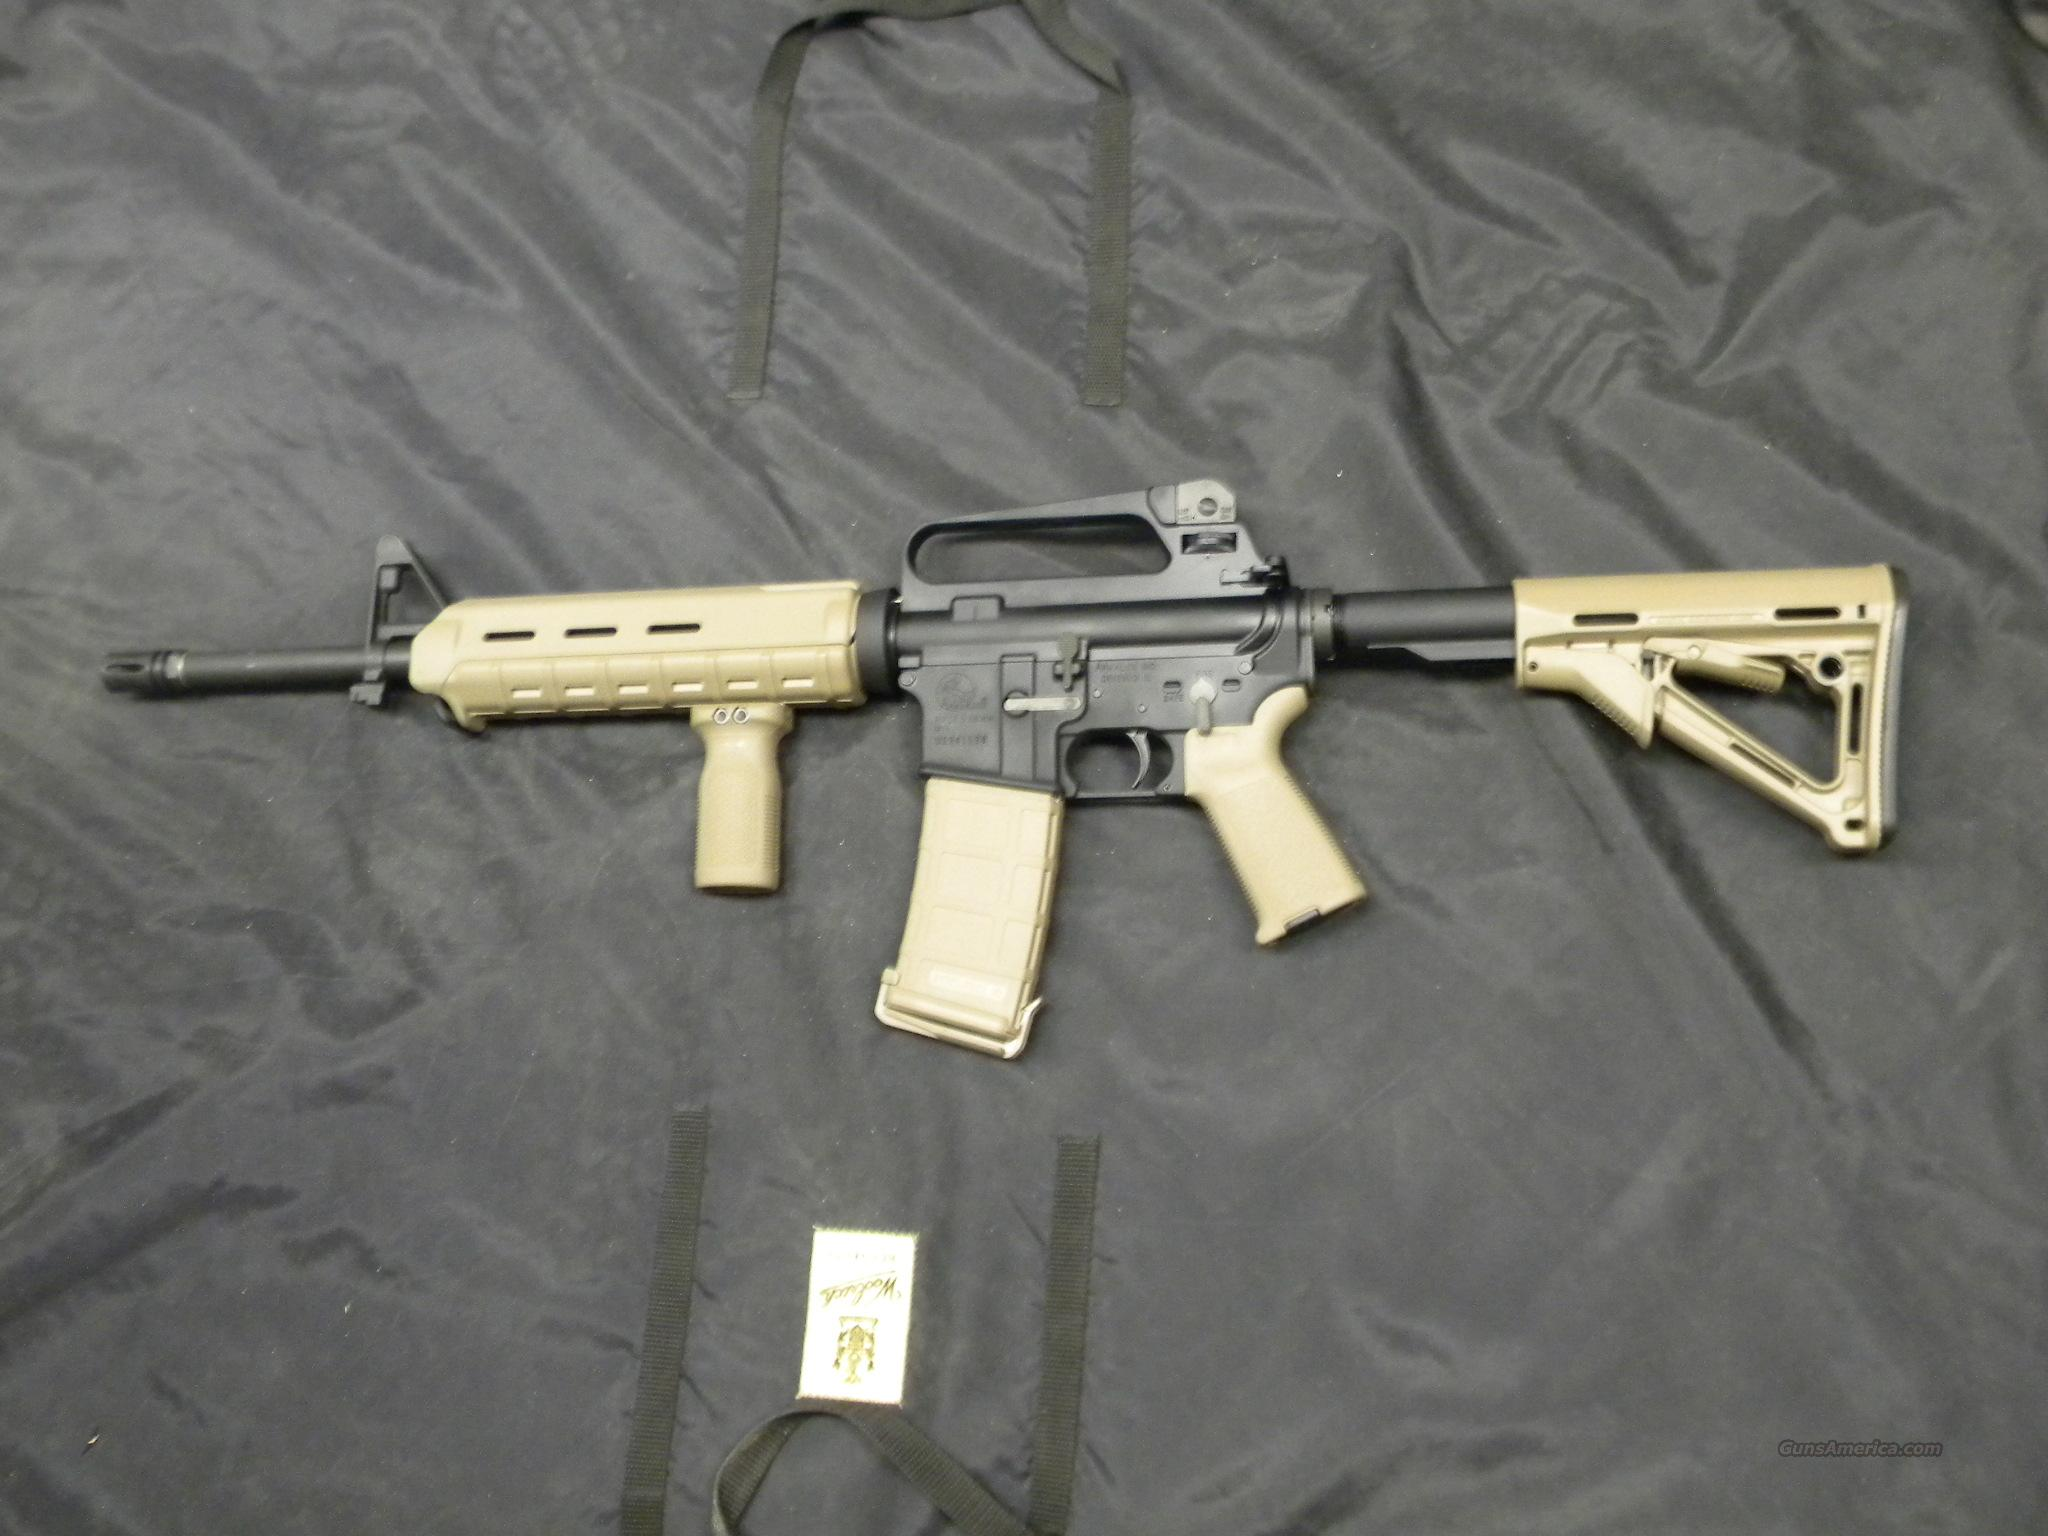 Armalite M15A2 .223/5.56 Carbine Special Magpul Edition  Guns > Rifles > Armalite Rifles > Complete Rifles